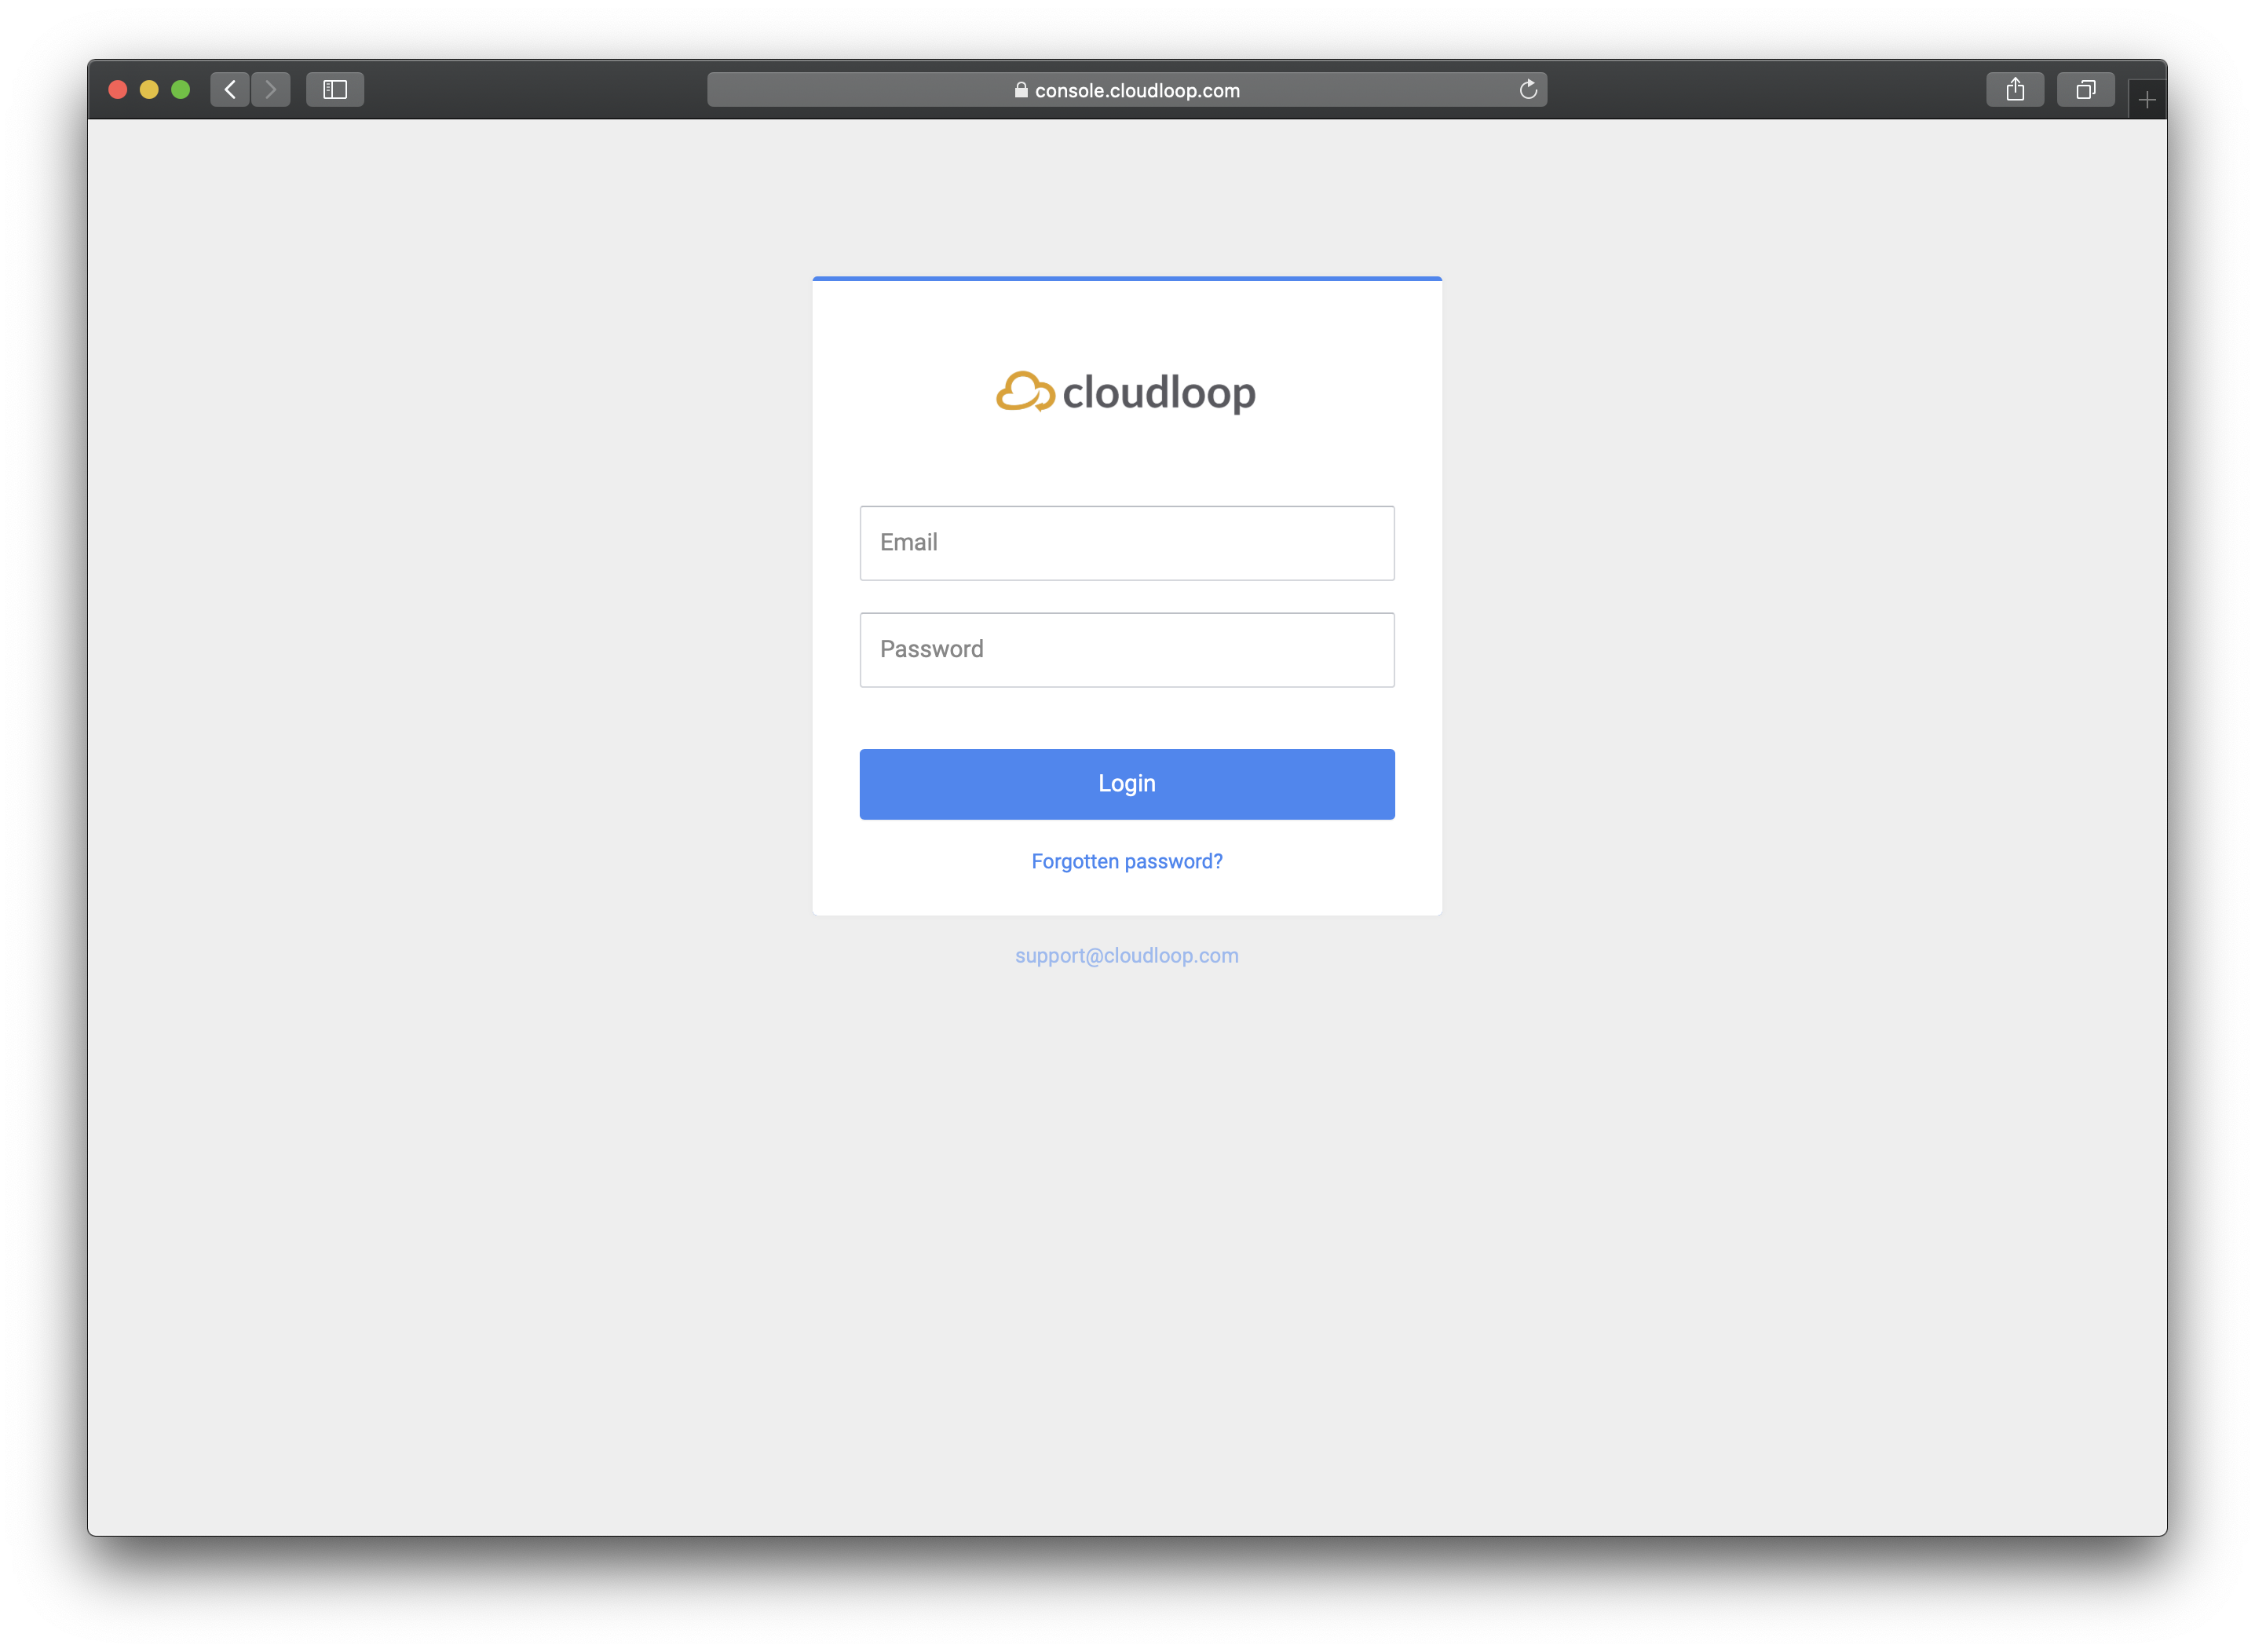 The login page at http://console.cloudloop.com